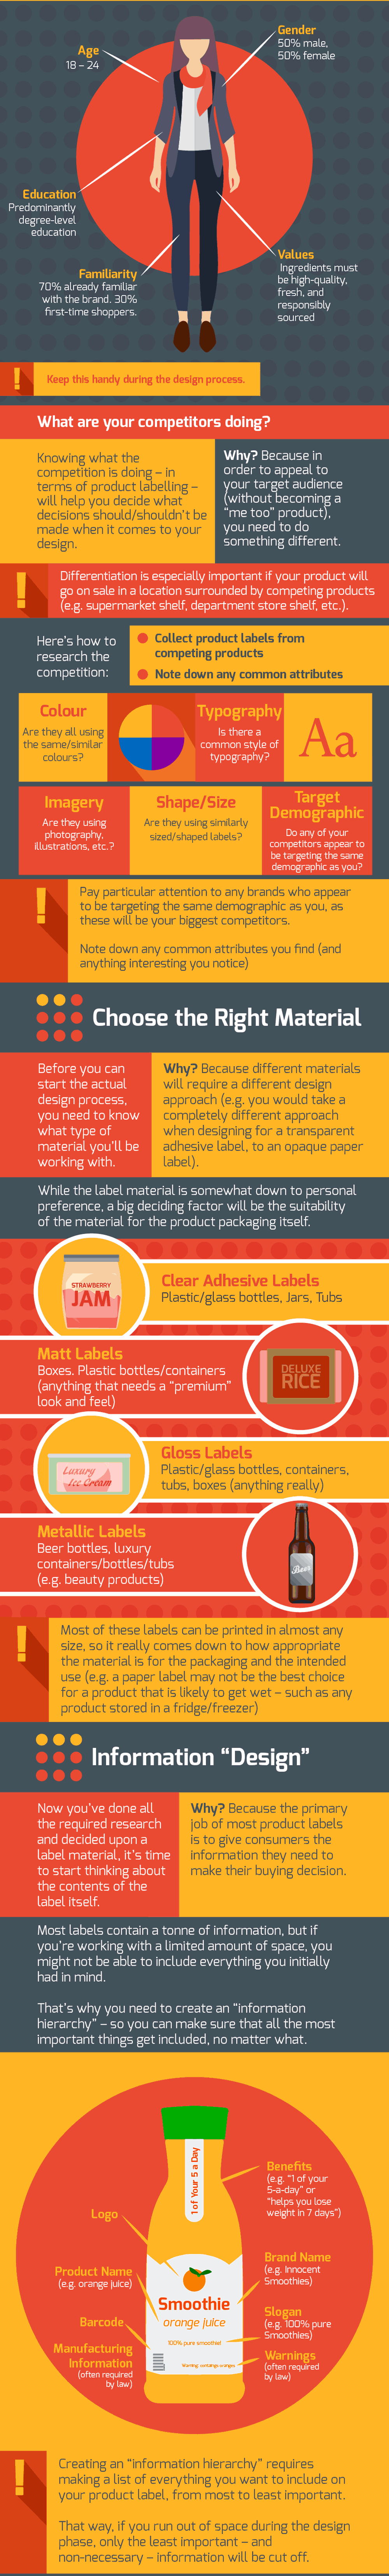 10 Steps To Creating The Perfect Product Label By Inkbot Design